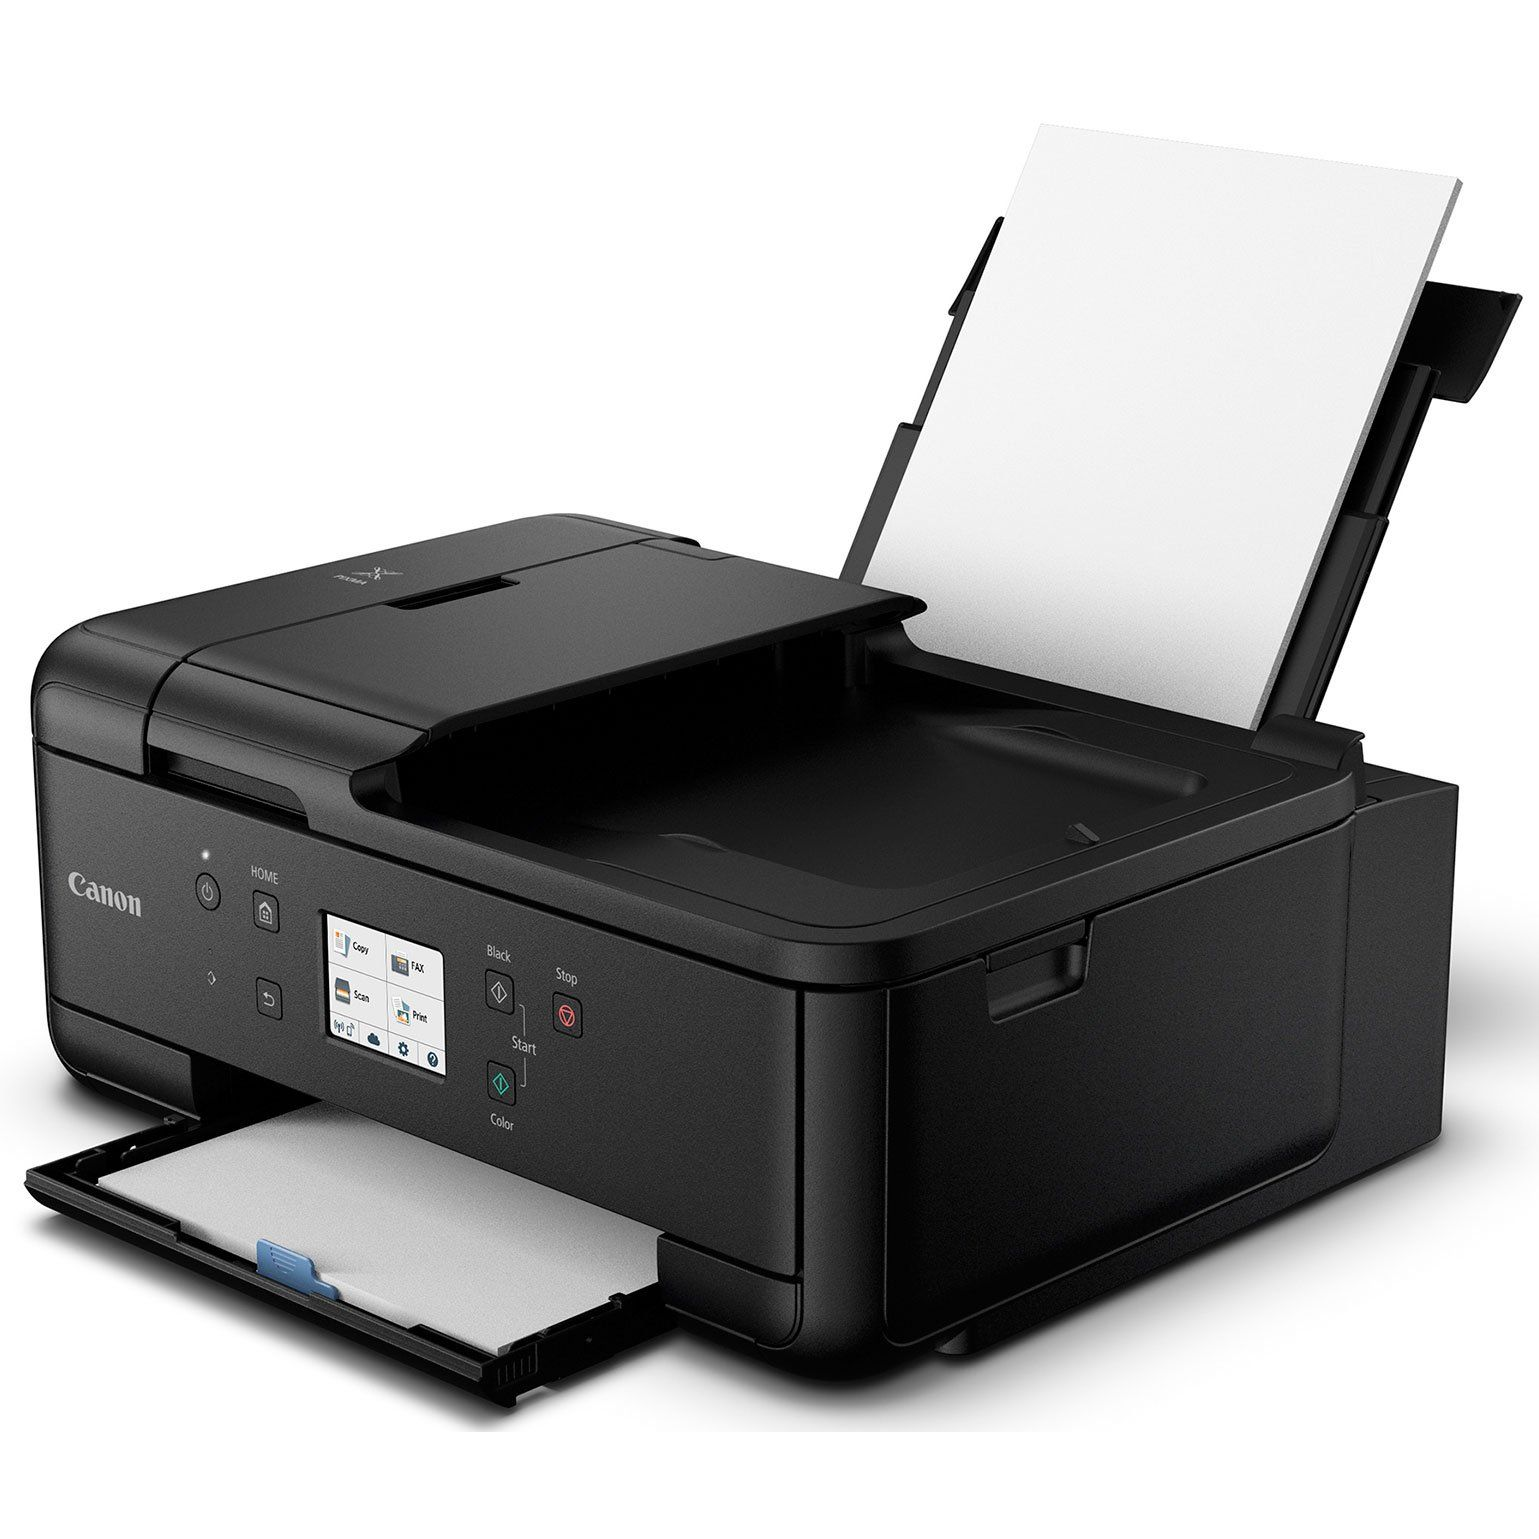 Canon Pixma Tr7520 Wireless Home Office Allinone Printer With General High Speed 6foot Usb Printer Cable And Corel Paint Printer Inkjet Printer Printer Scanner